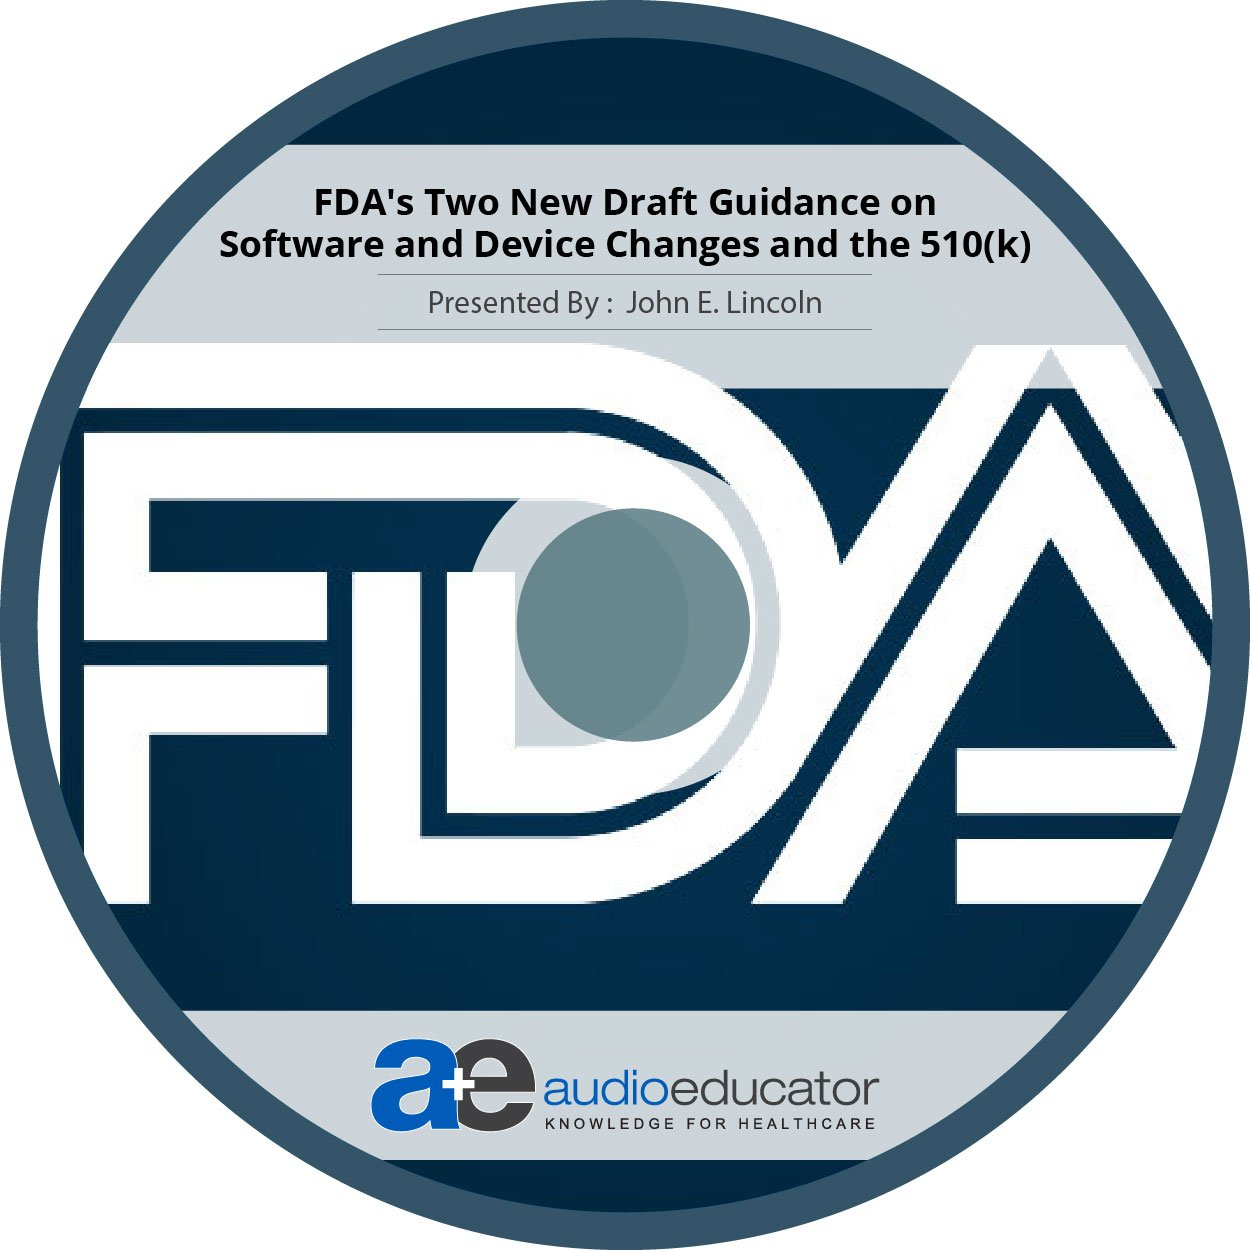 FDA's Two New Draft Guidance on Software and Device Changes and the 510(k) PDF